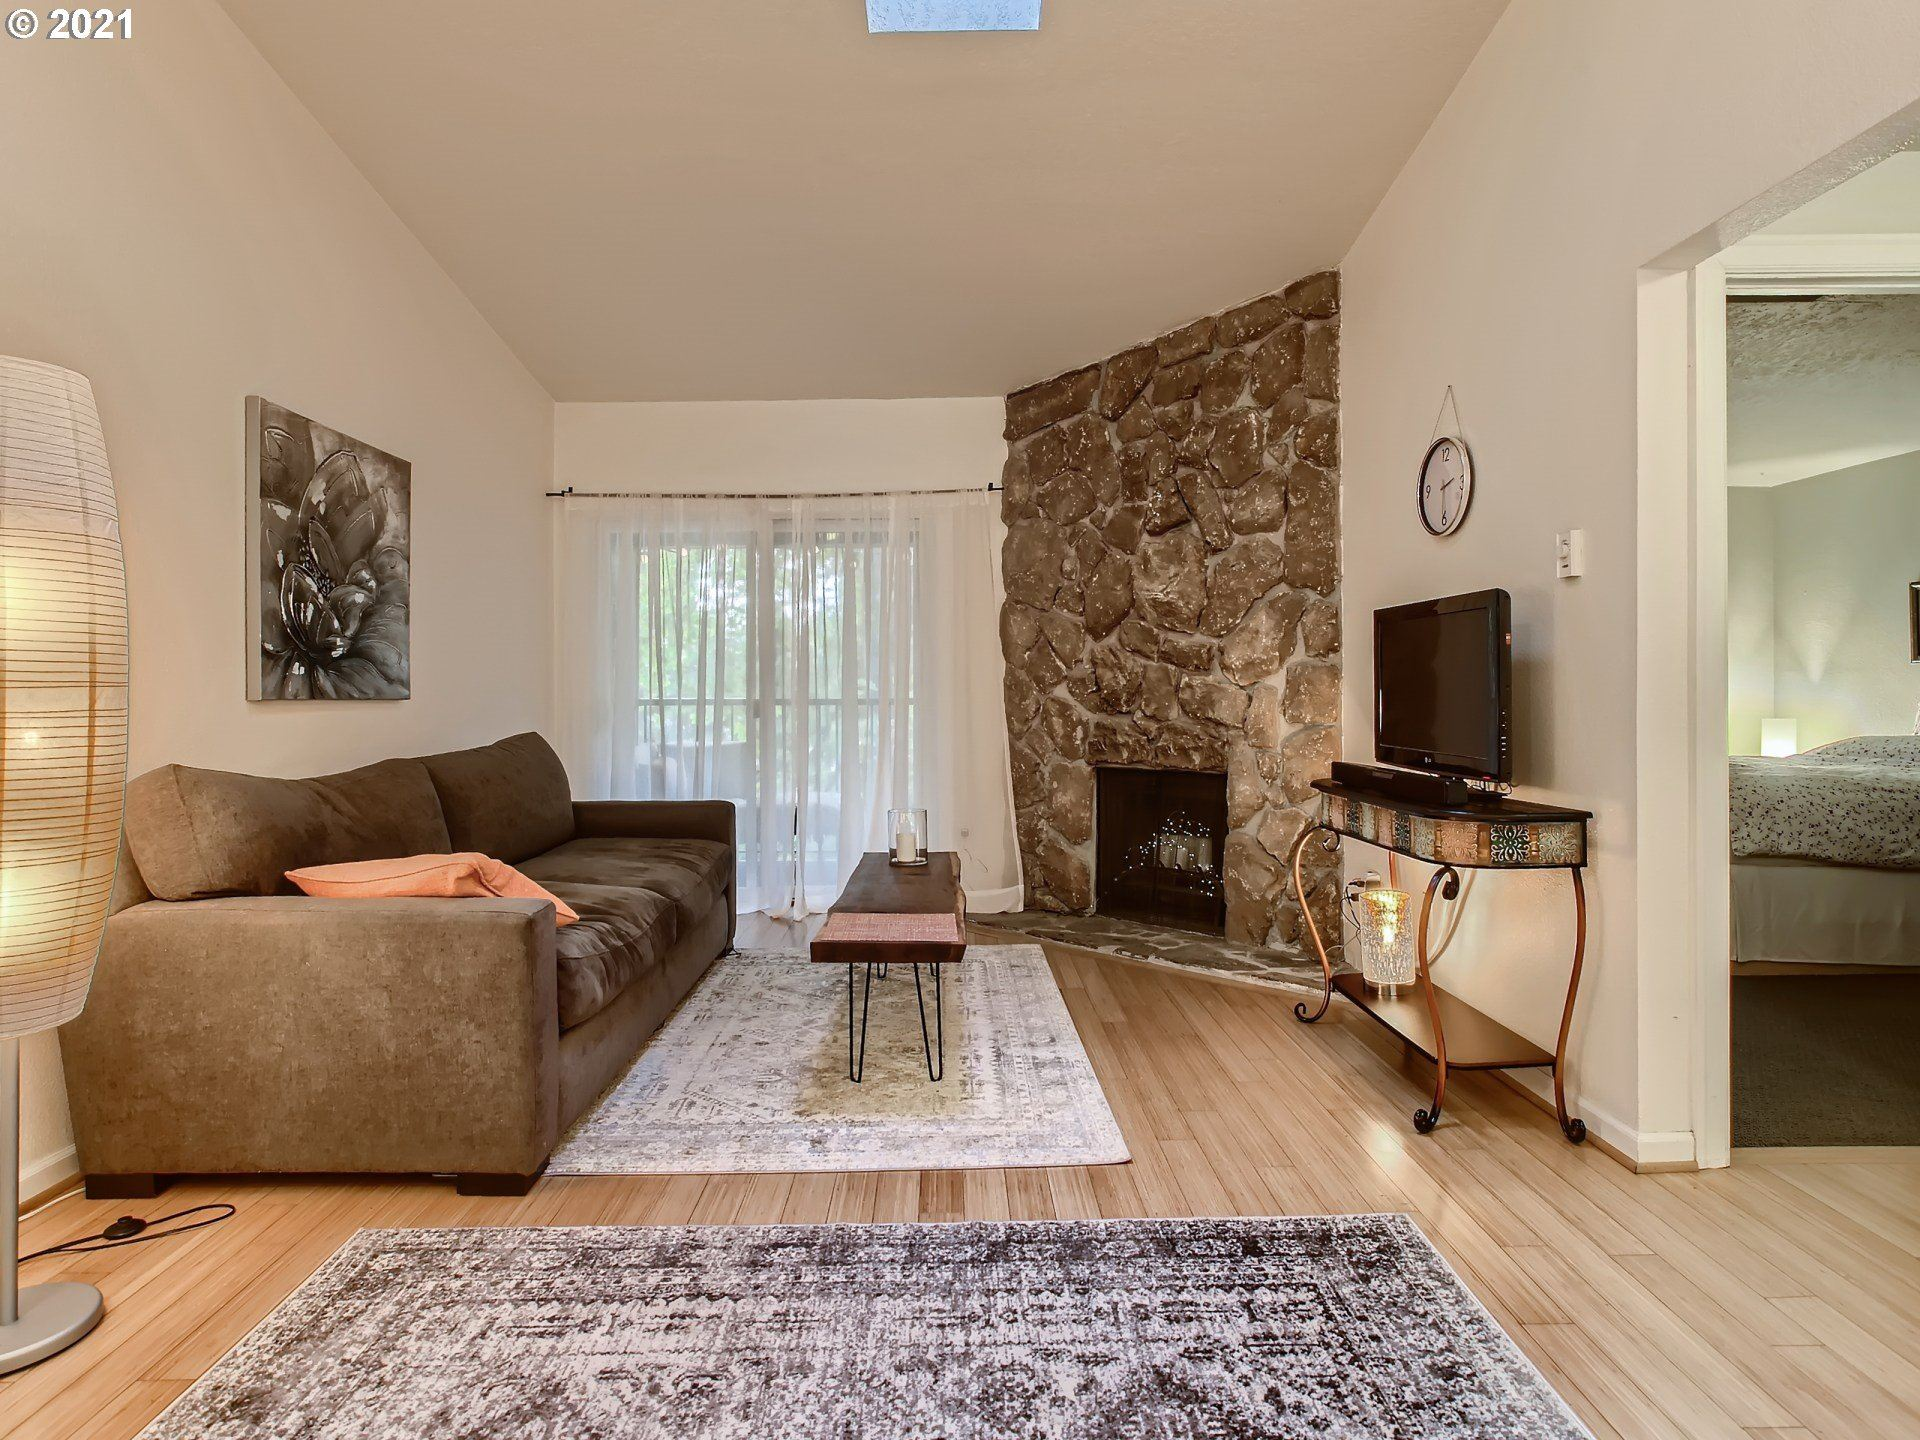 Photo of 2680 SW 87TH AVE #5, Portland, OR 97225 (MLS # 21446885)